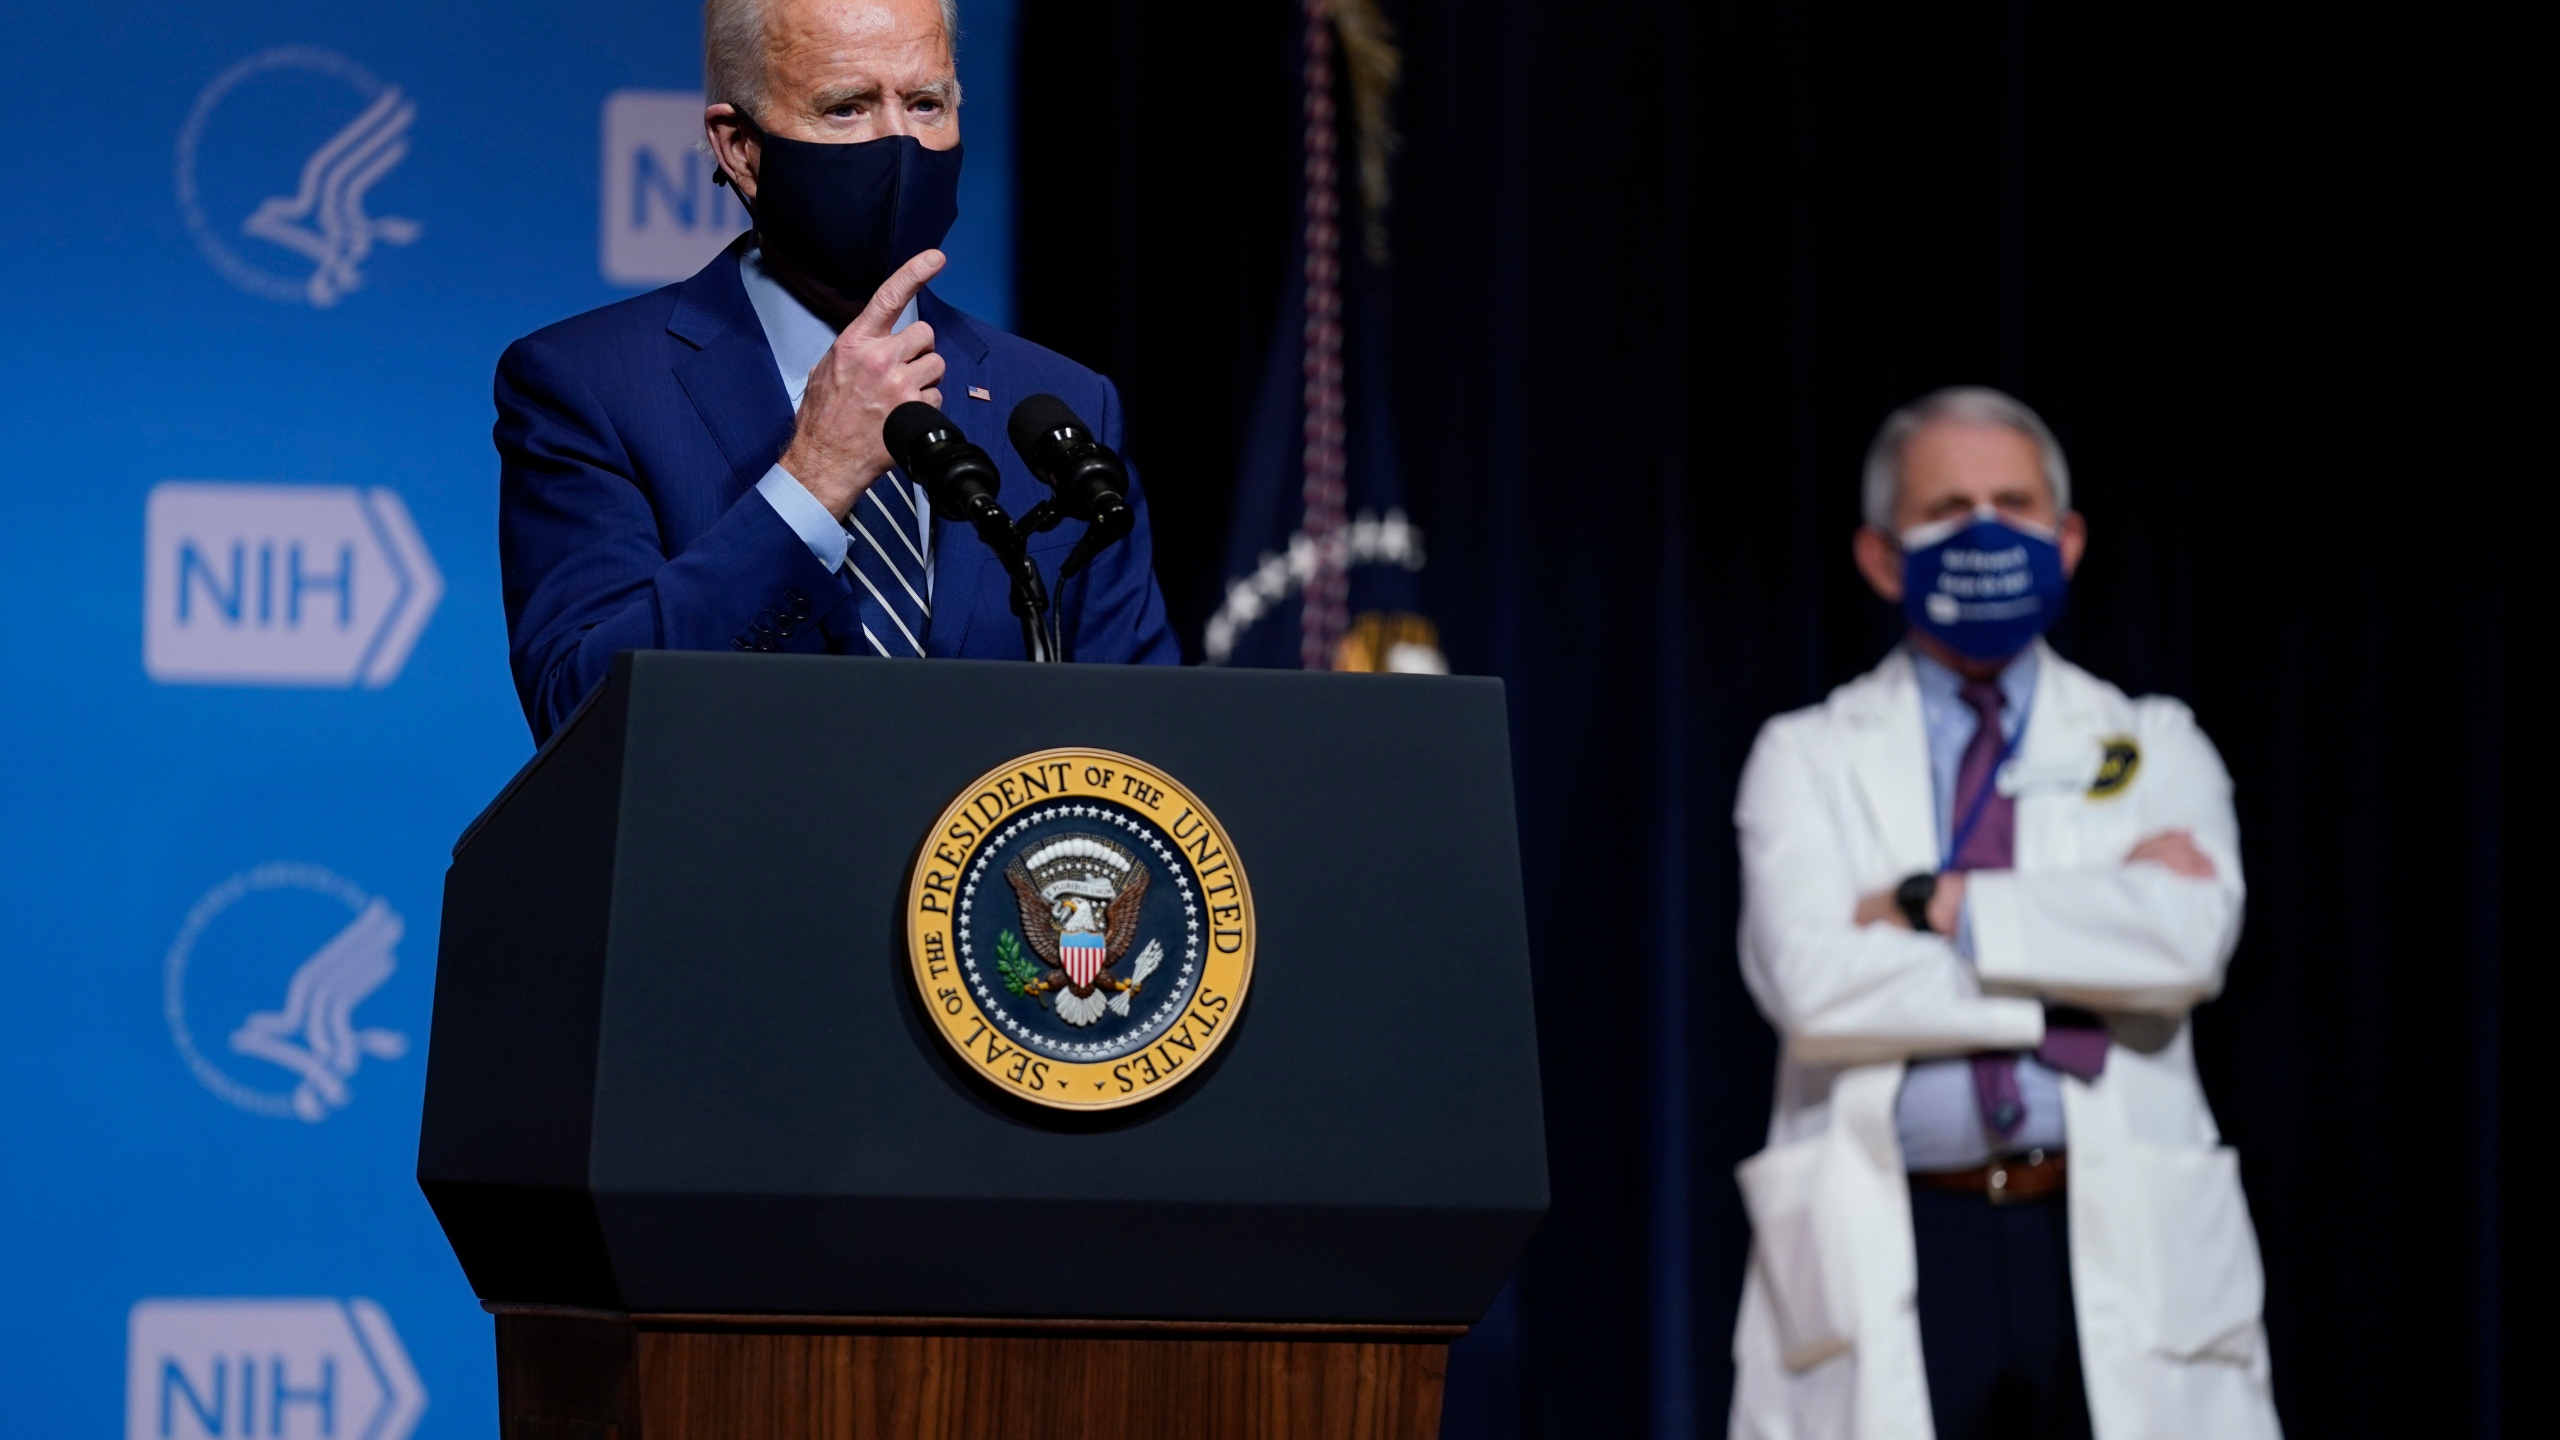 President Joe Biden speaks during a visit to the Viral Pathogenesis Laboratory at the National Institutes of Health in Bethesda, Md. on Feb. 11, 2021 as Dr. Anthony Fauci looks on. (Evan Vucci/Associated Press)